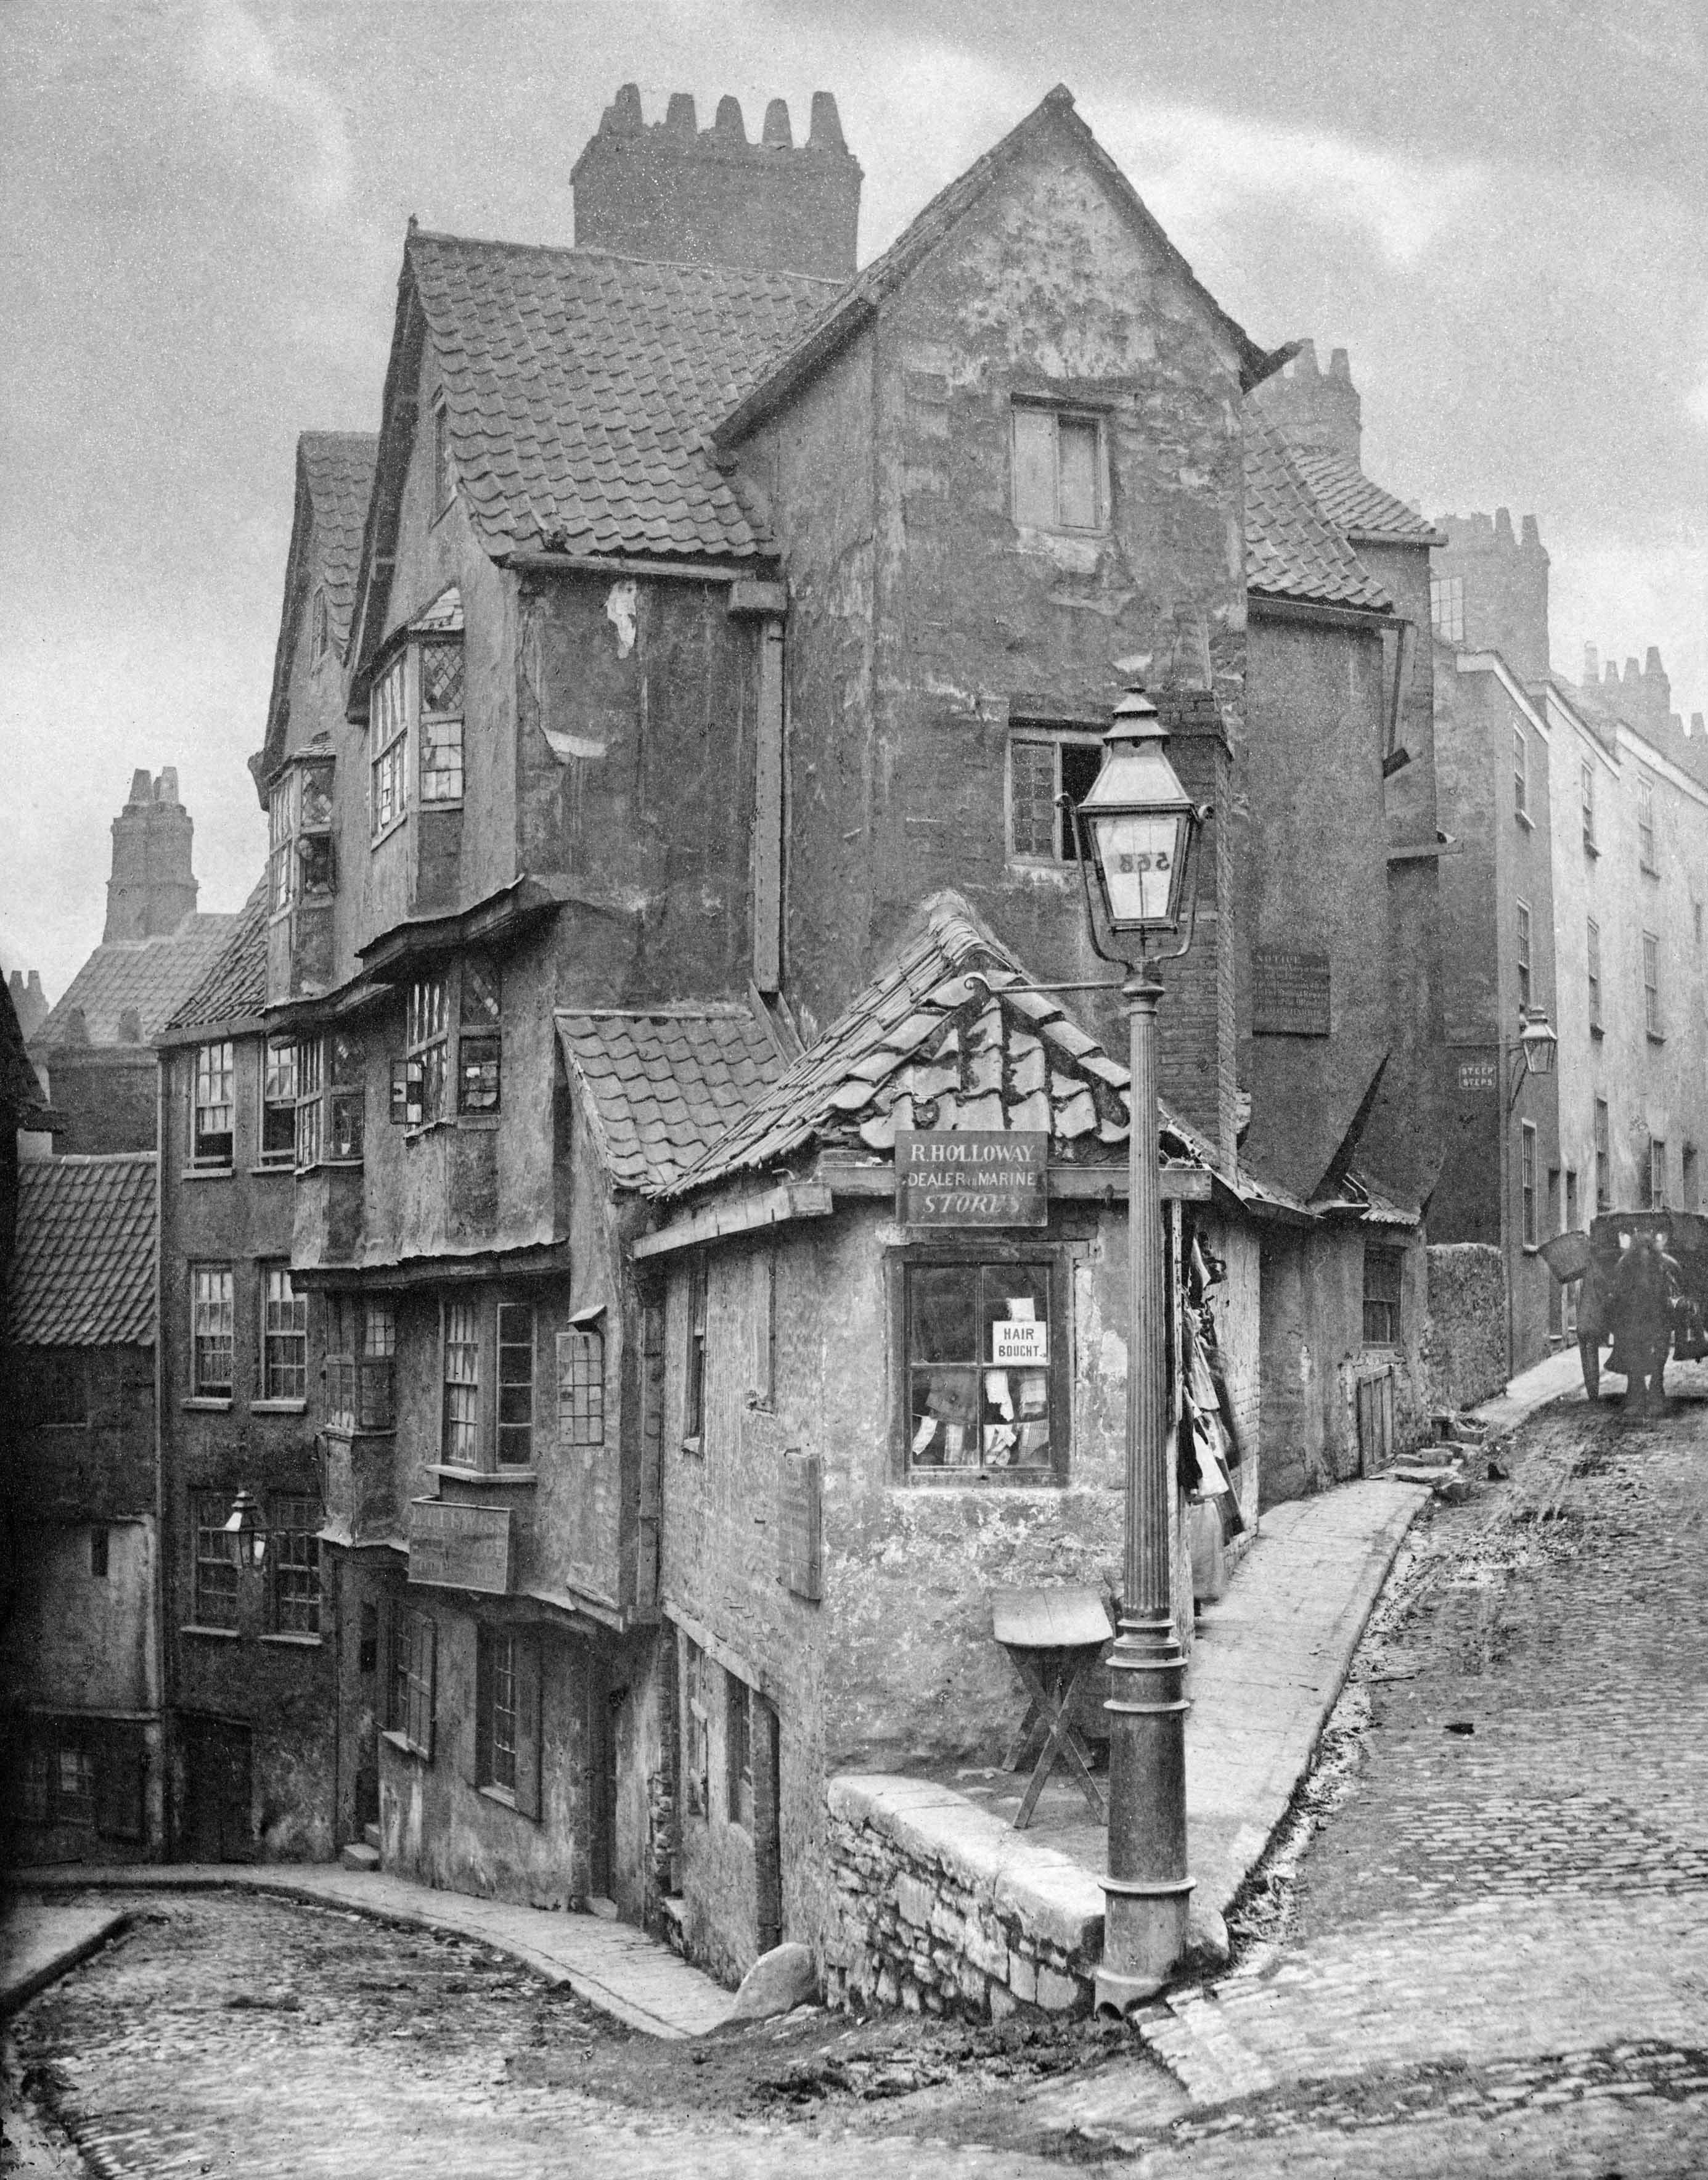 The junction of Steep Street and Trenchard Street, Bristol, in 1866.  Lost England – photographs from 1870 to 1930